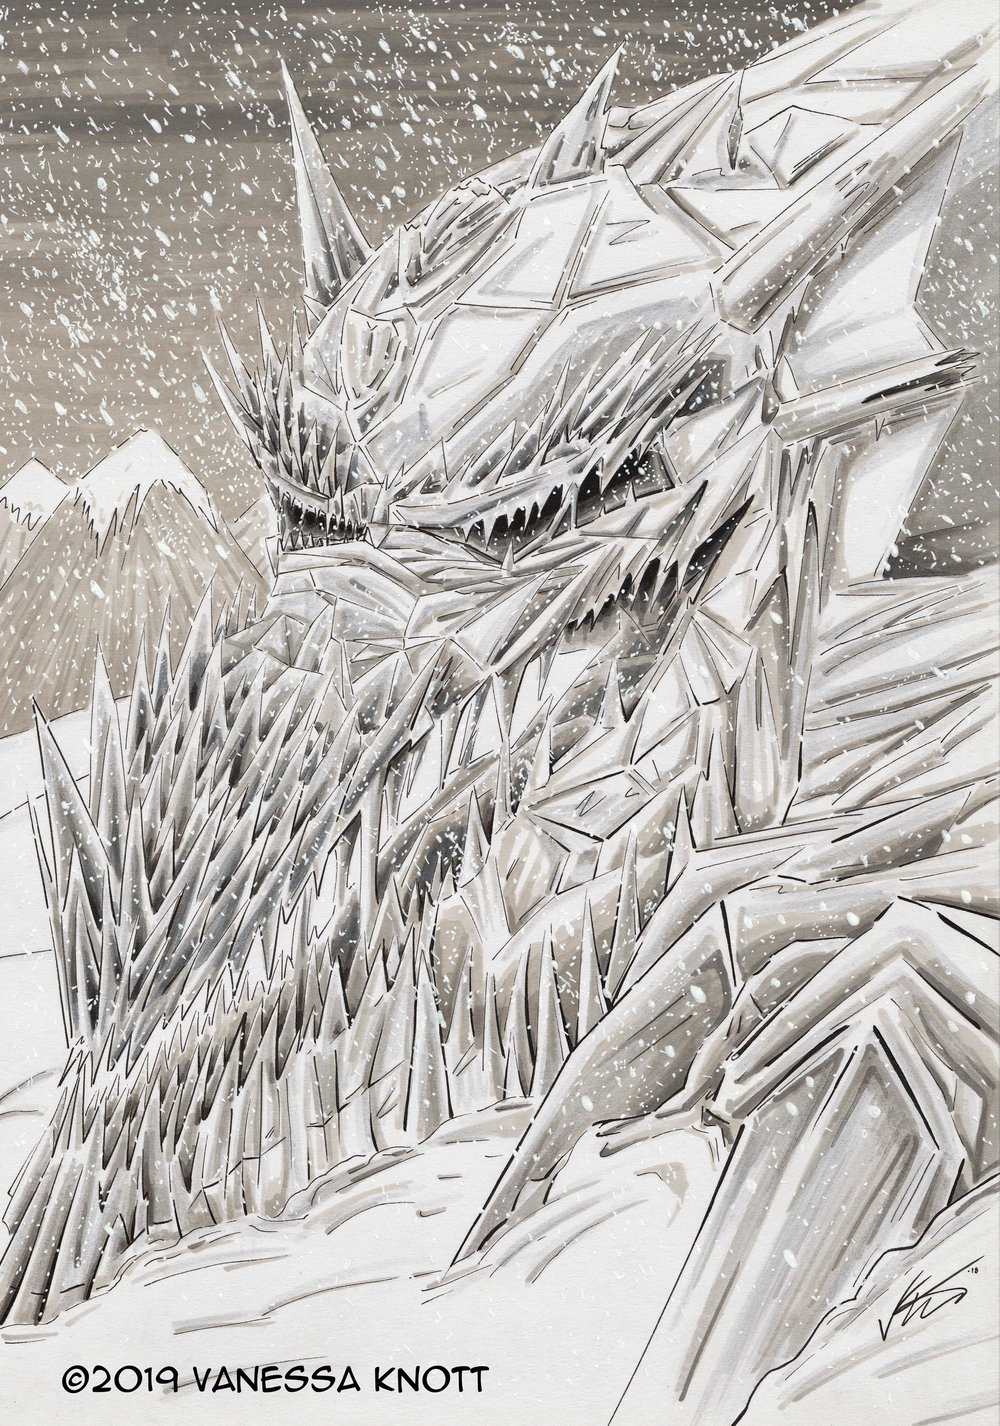 Ice Dragon (Smaugust Art Challenge) 2018, Promarkers on paper, 21.0 x 29.7cm